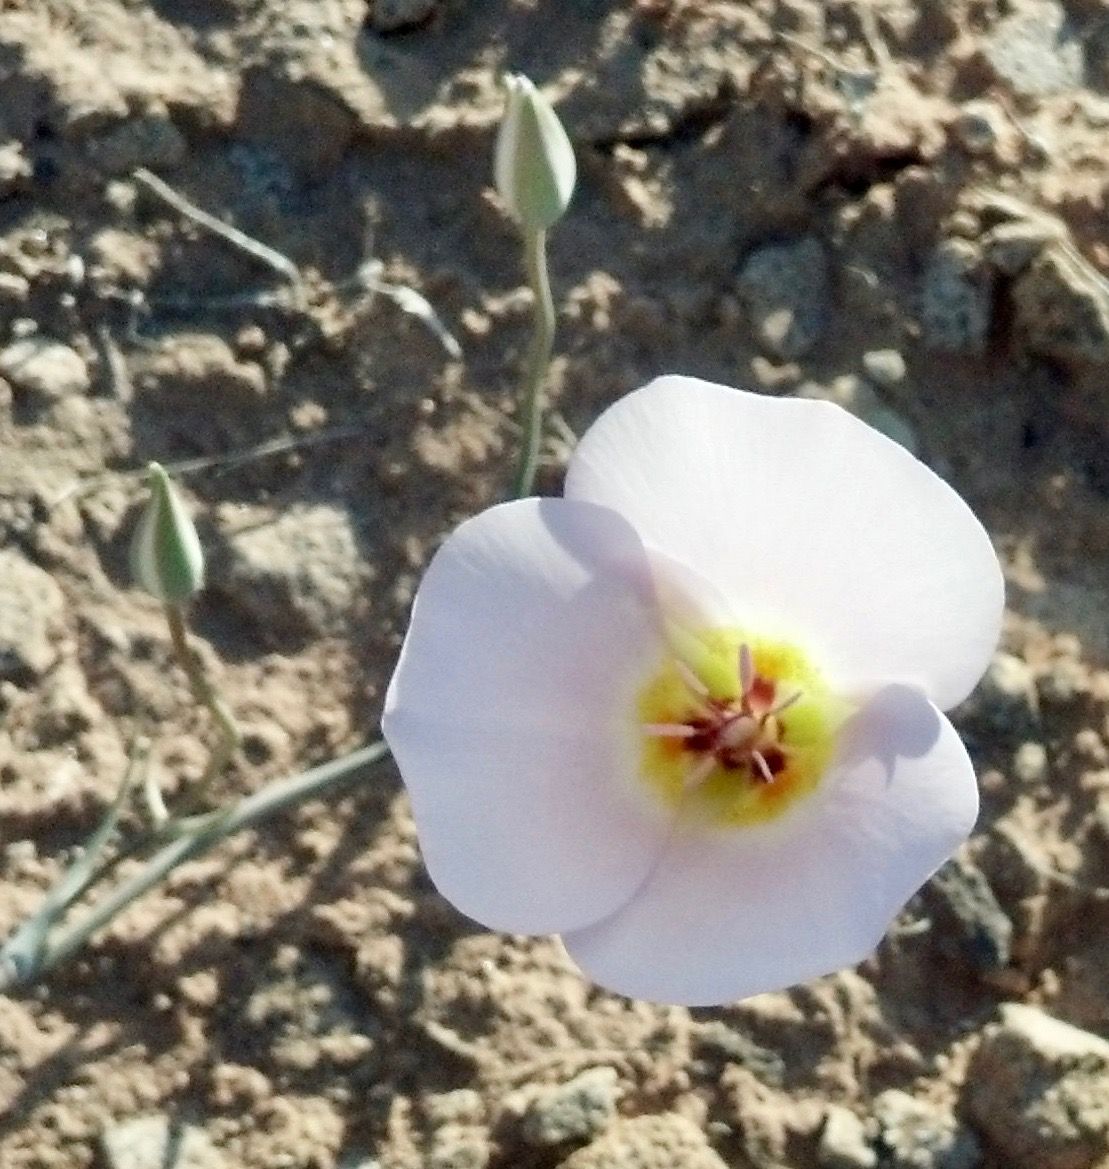 A sego lily grows in the desert near the Bear Claw Poppy trail in St. George, Utah, Apr. 13, 2013 | Photo by Joyce Kuzmanic, St. George News